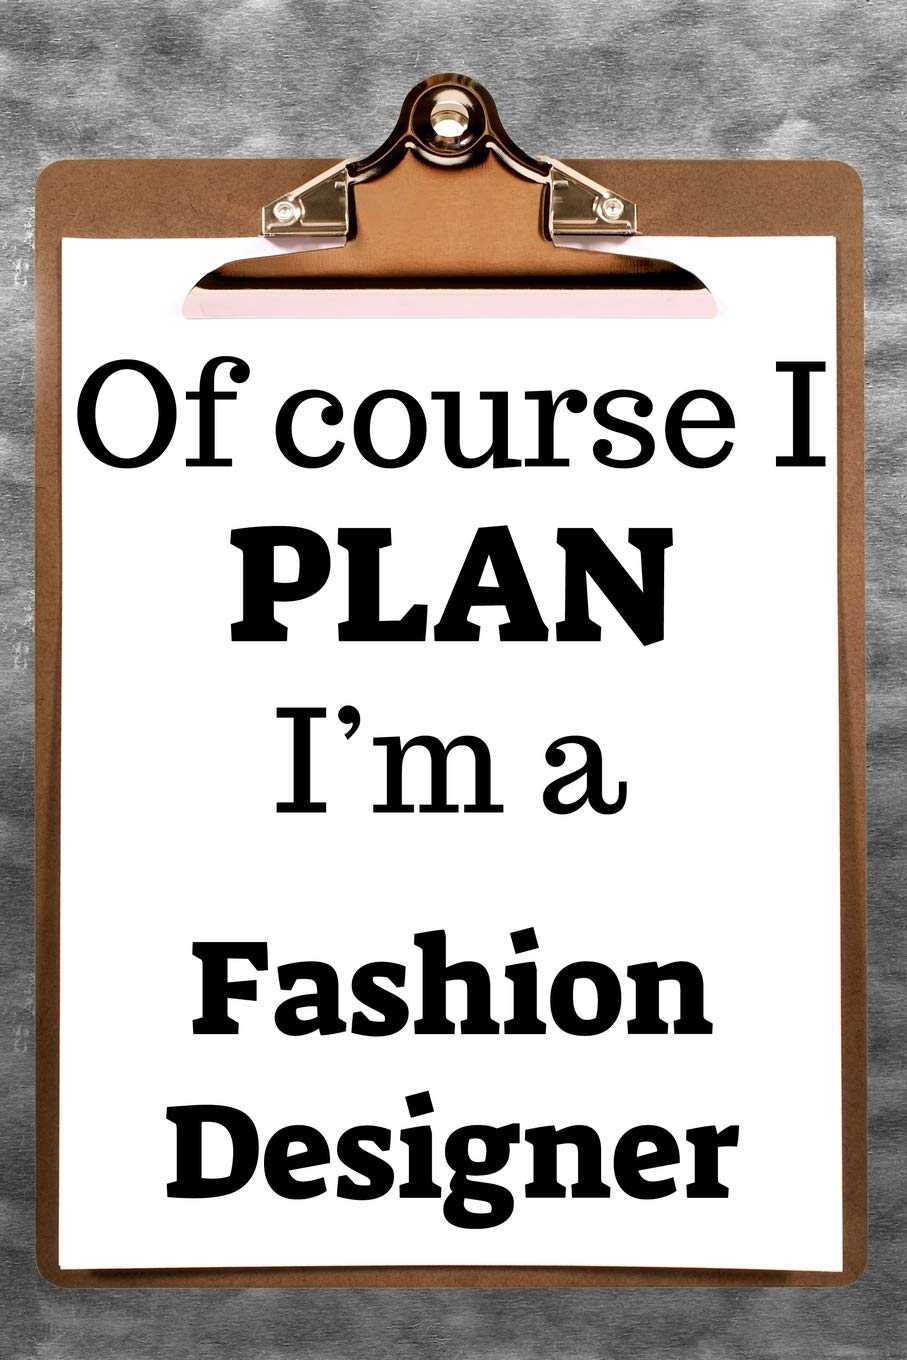 Of Course I Plan I M A Fashion Designer 2019 6 X9 365 Daily Planner To Organize Your Schedule By The Hour Planners Desirable 9781731590206 Amazon Com Books